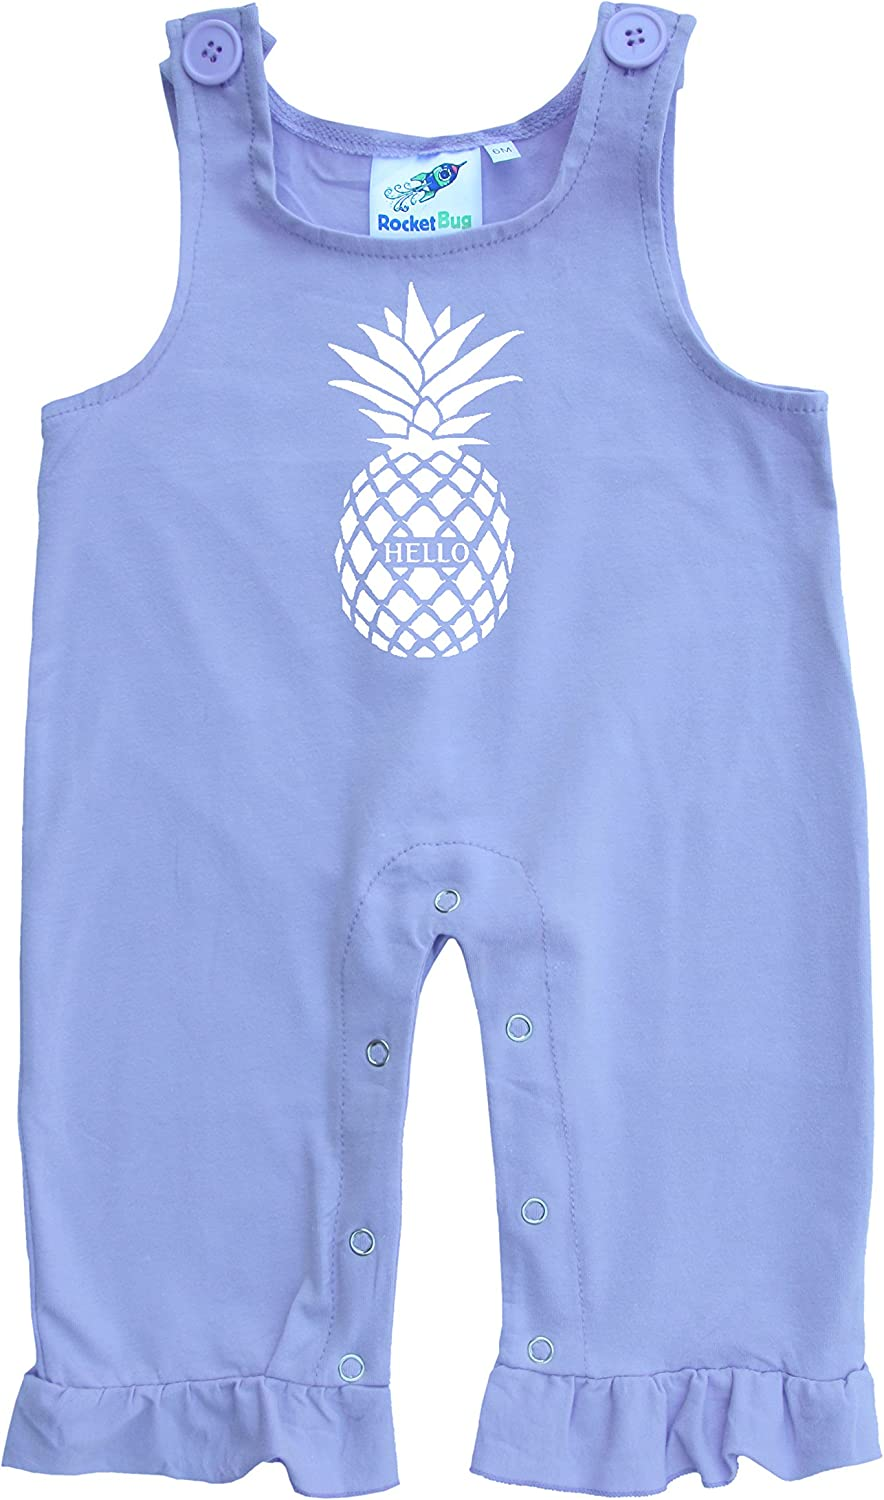 Rare Rocket New arrival Bug Baby Toddler Overalls-Pineapple and